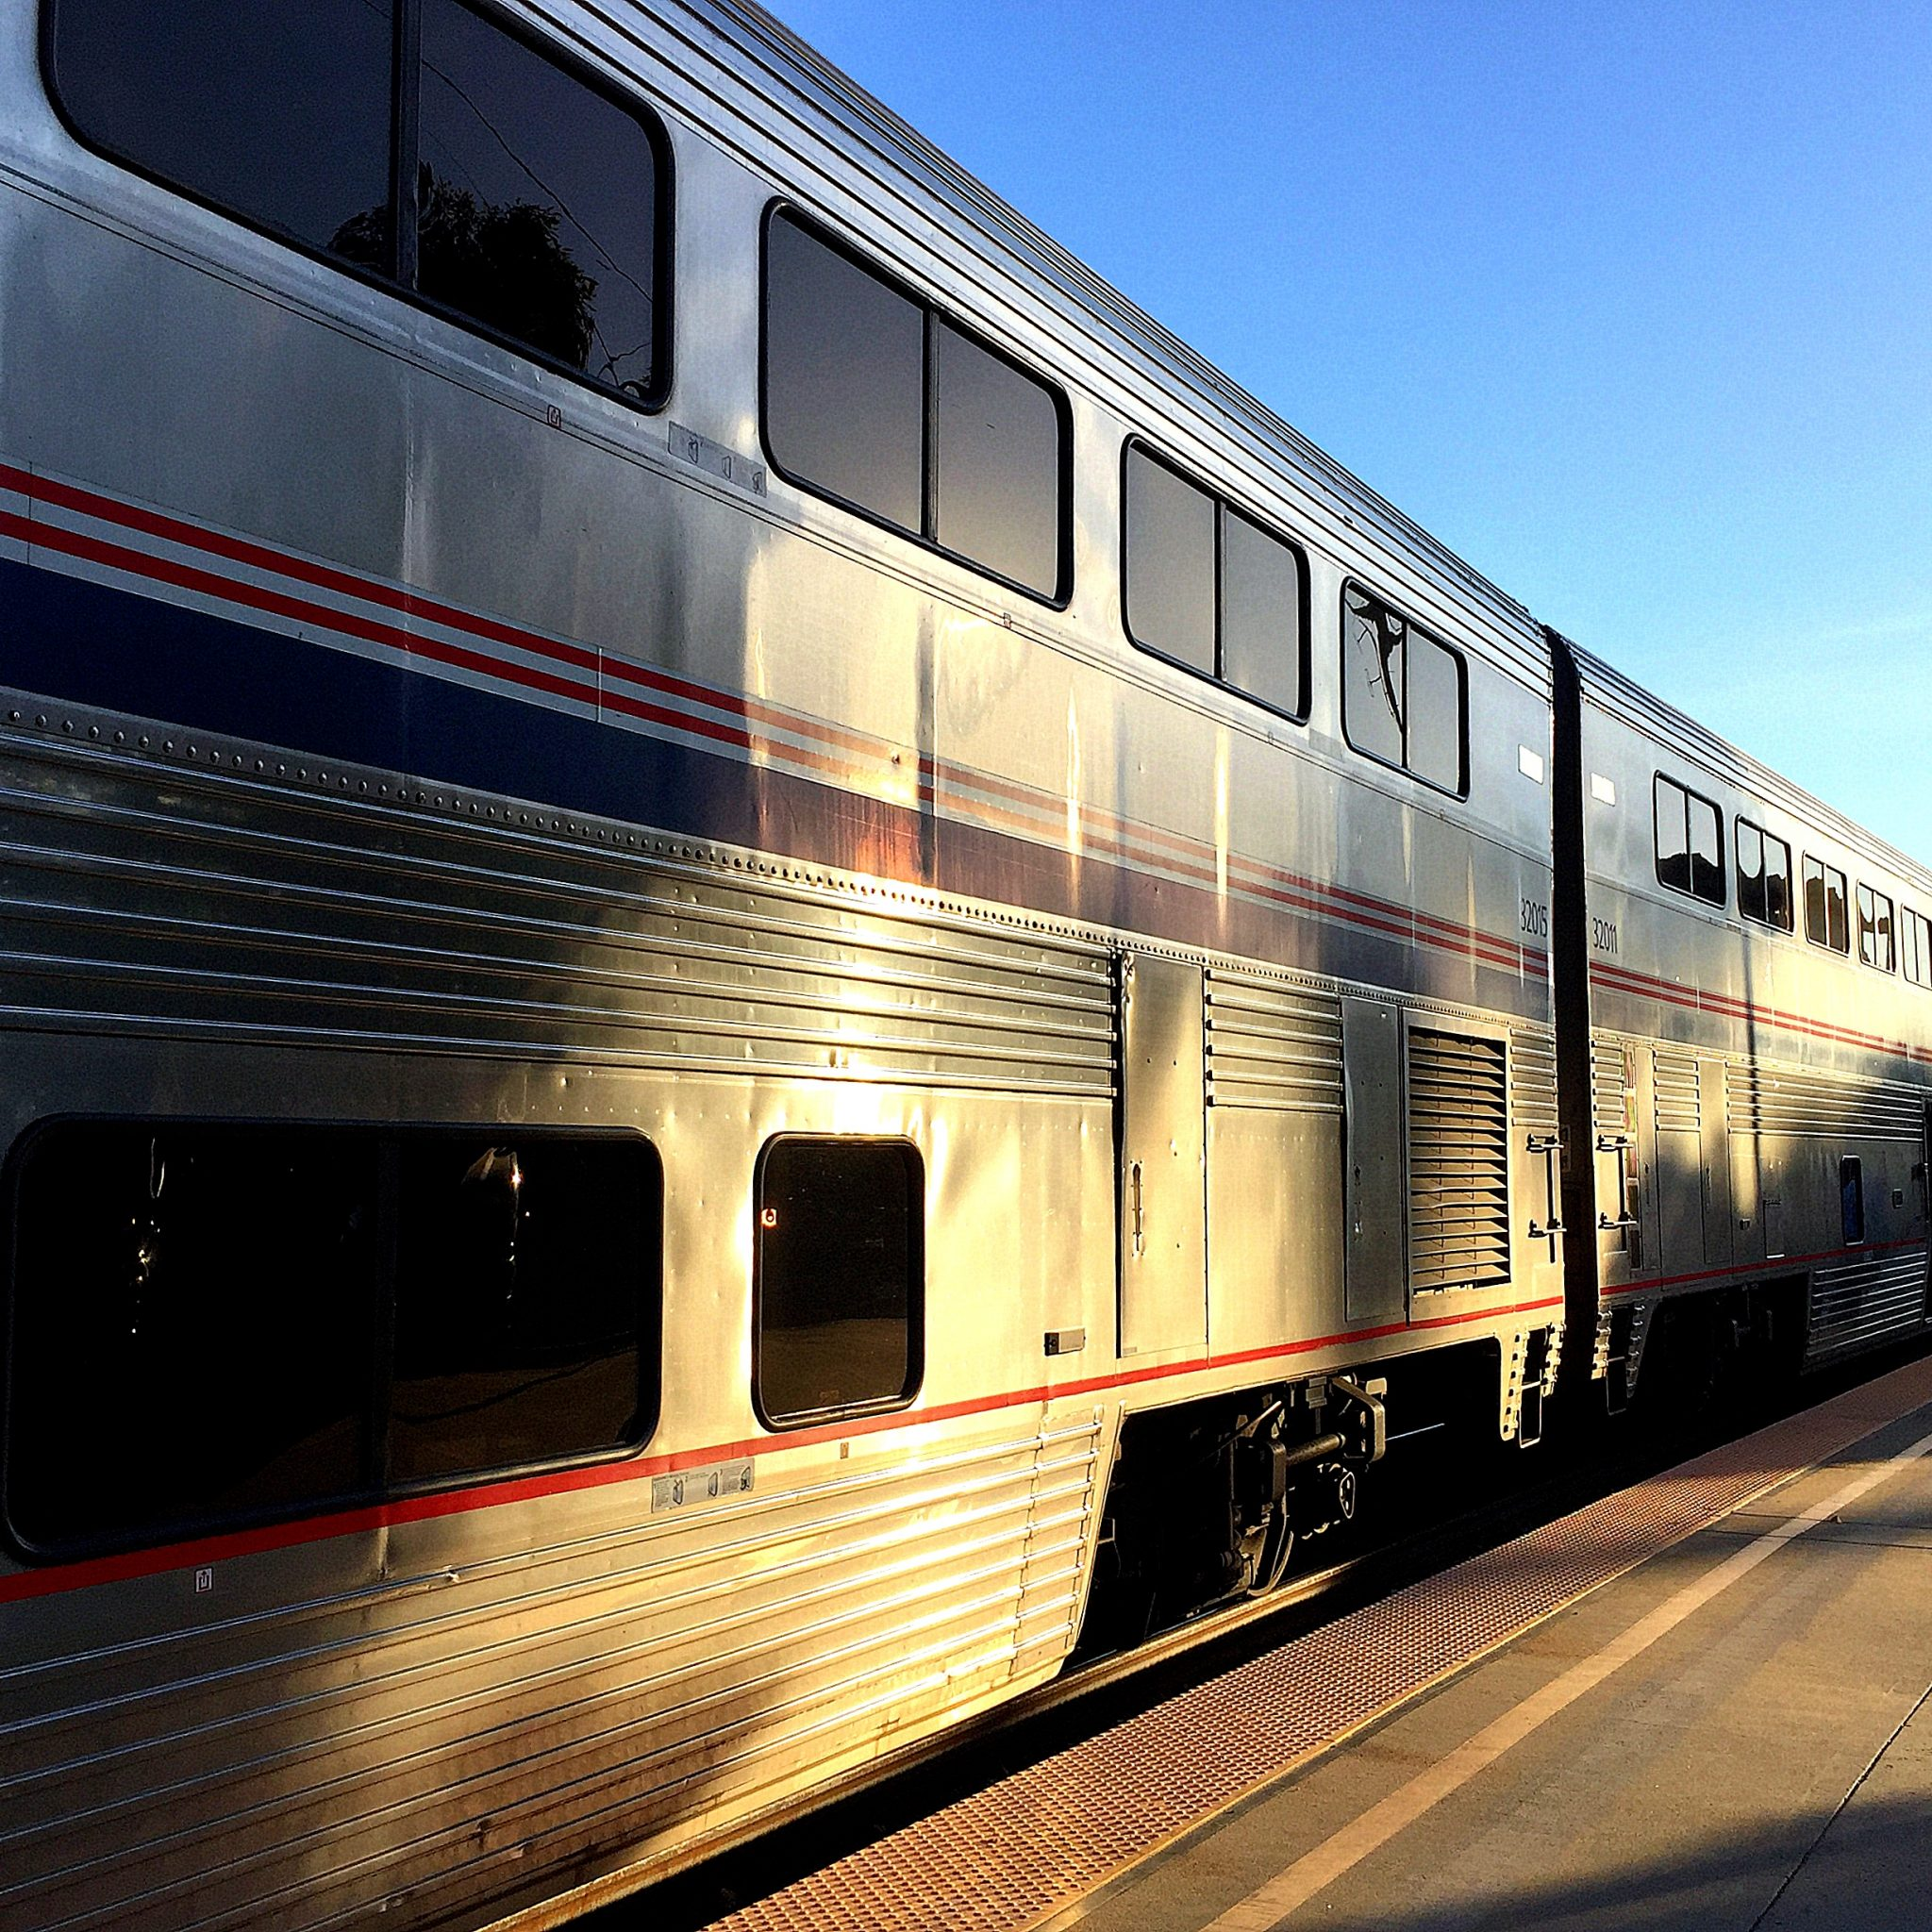 Amtrak has been reducing fuel and energy usage with a few initiatives including energy efficiency upgrades.